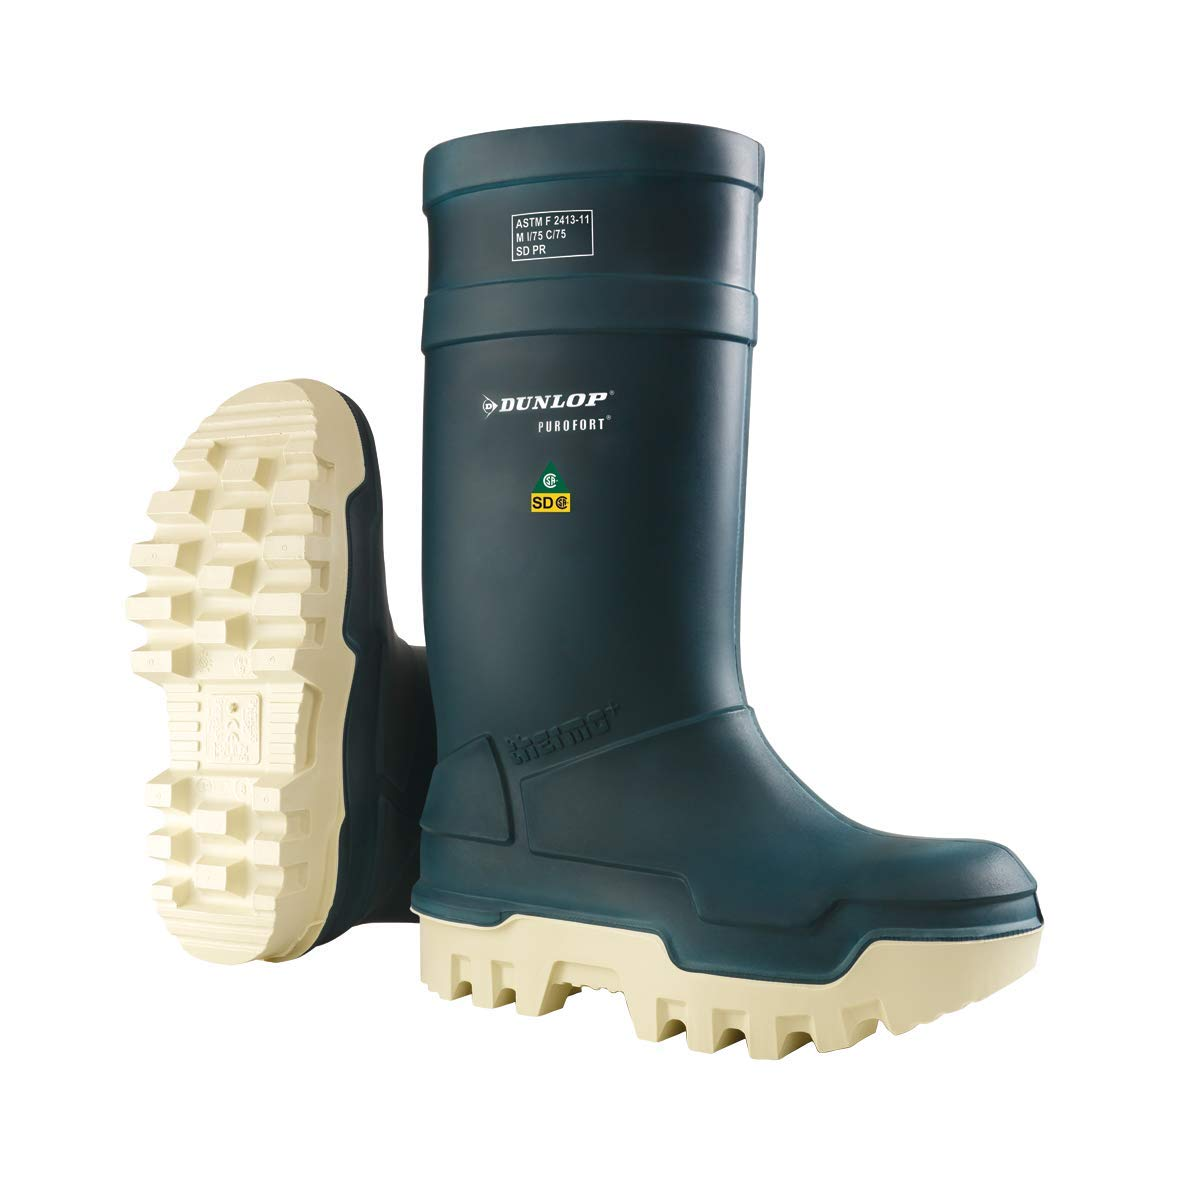 Purofort Thermo+ Full Safety Blue Shoes - 11 by Dunlop (Image #1)